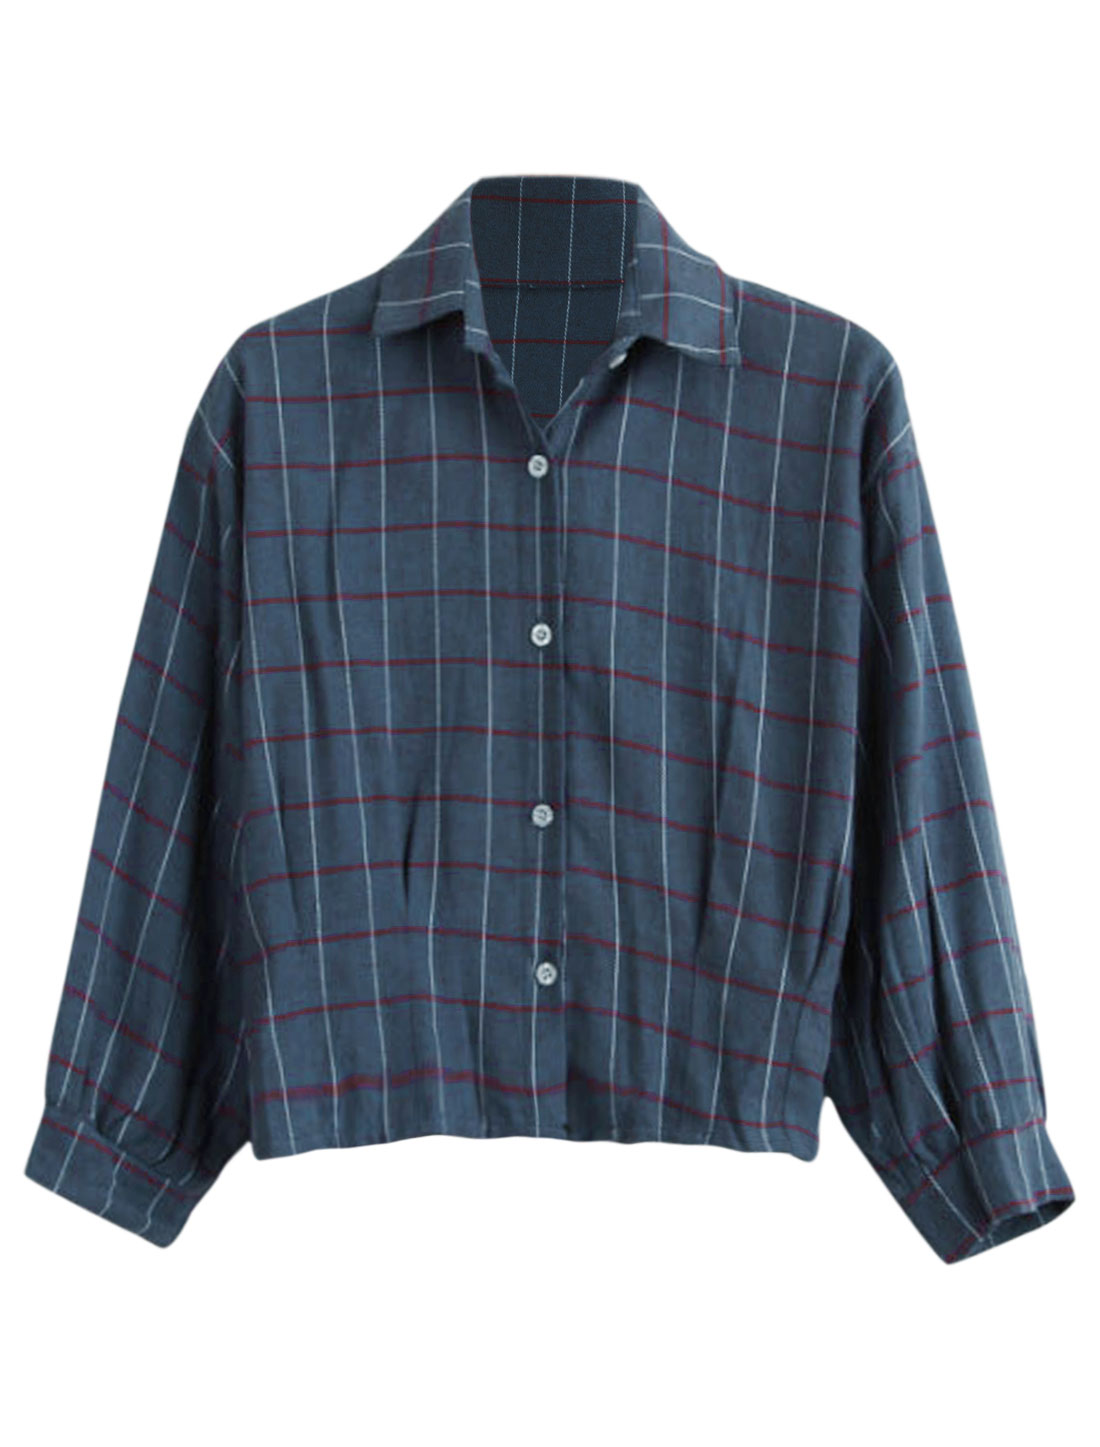 Lady Plaids Pattern Button Closure Front Casual Shirt Navy Blue S